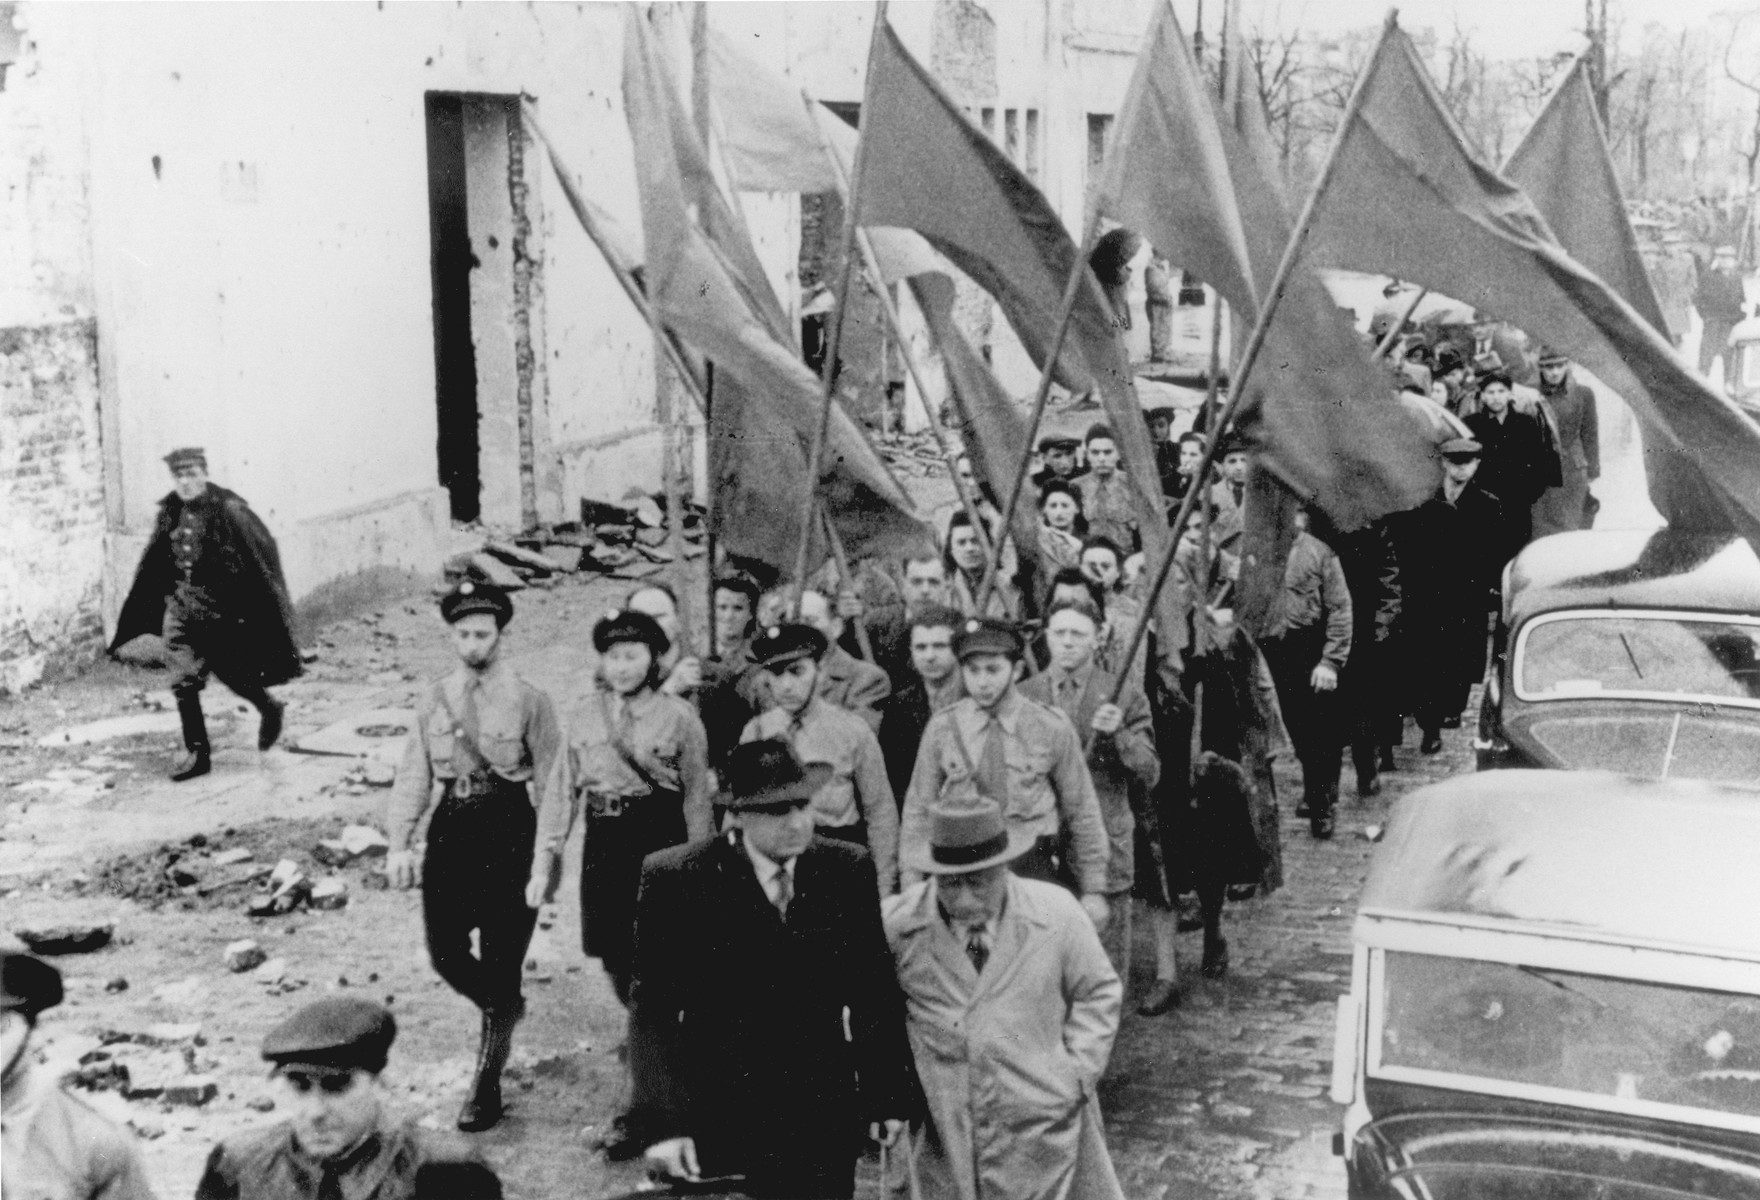 Jewish survivors carrying flags march along a street in Warsaw [probably during a demonstration marking the fourth anniversary of the Warsaw ghetto uprising].   The marchers are probably members of the Betar revisionist Zionist movement.